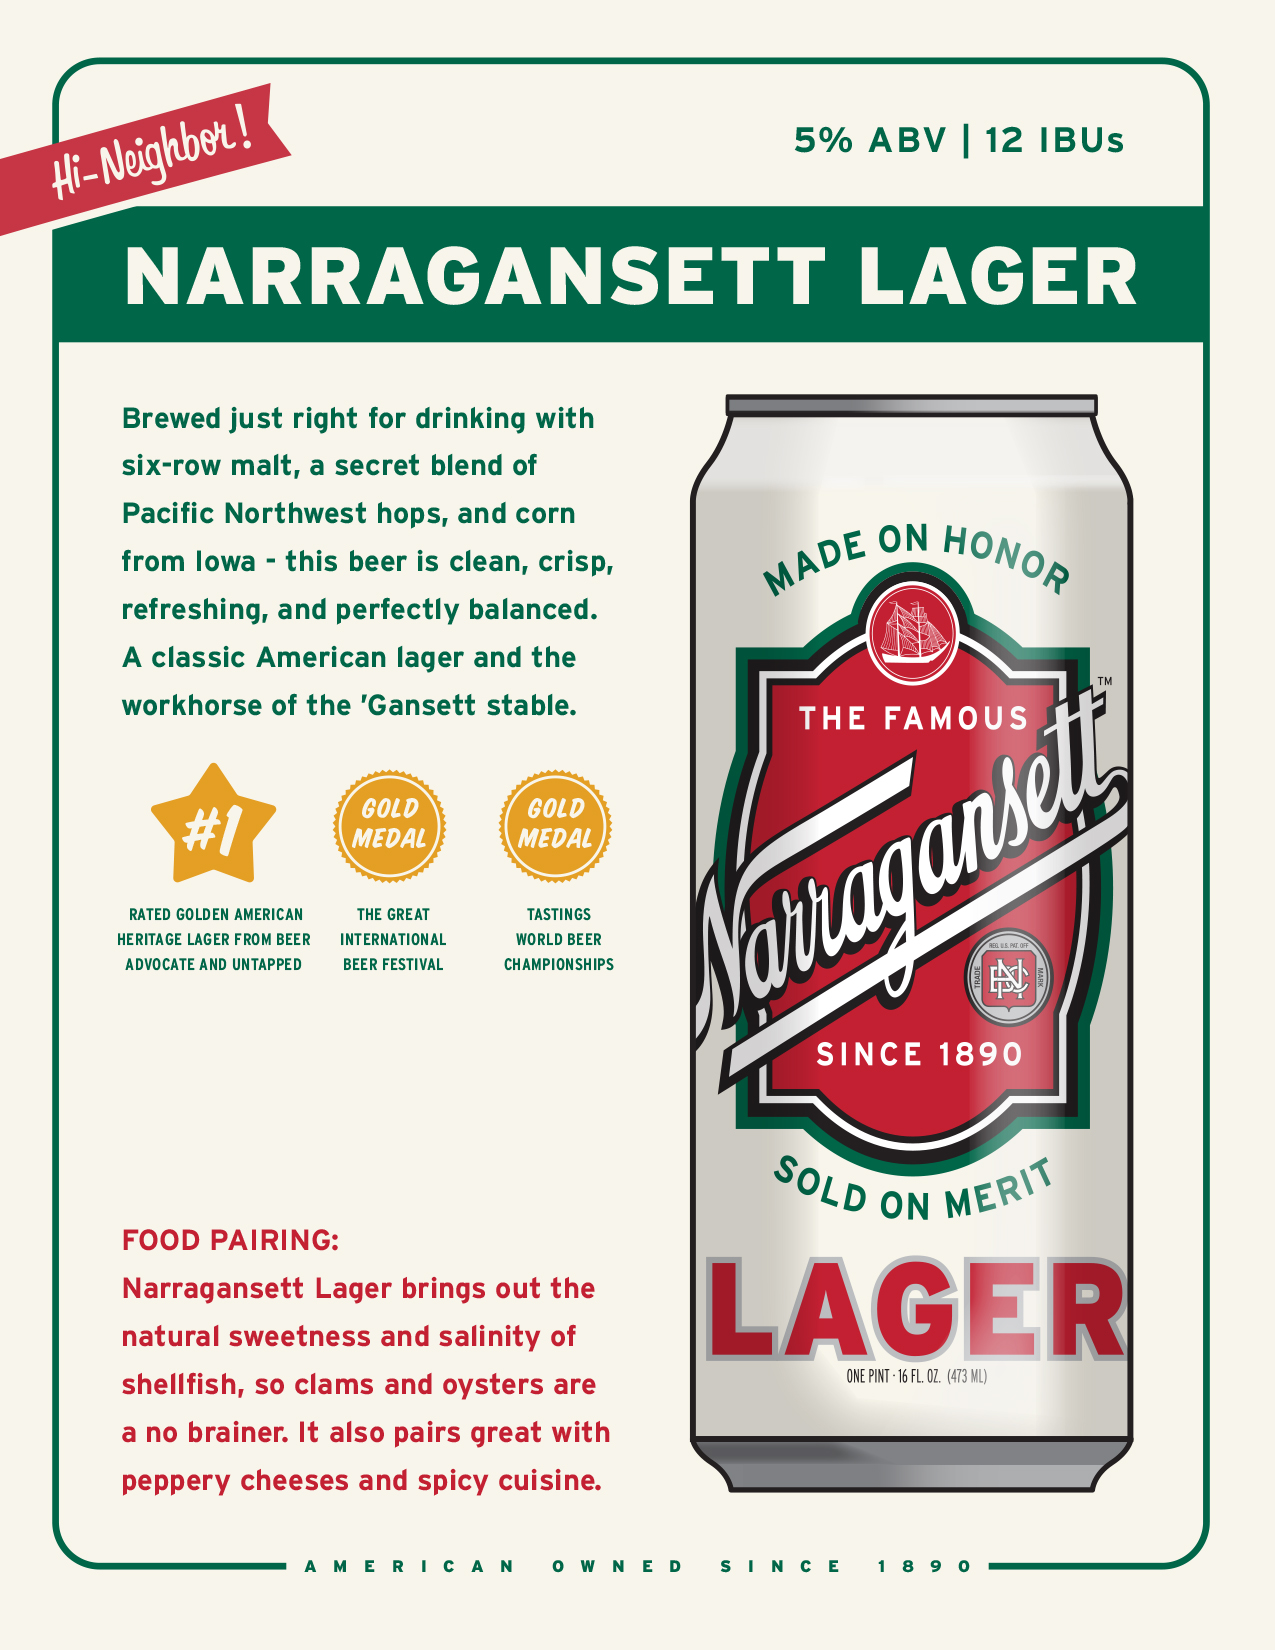 Narragansett Lager. Original craft beer from New England.